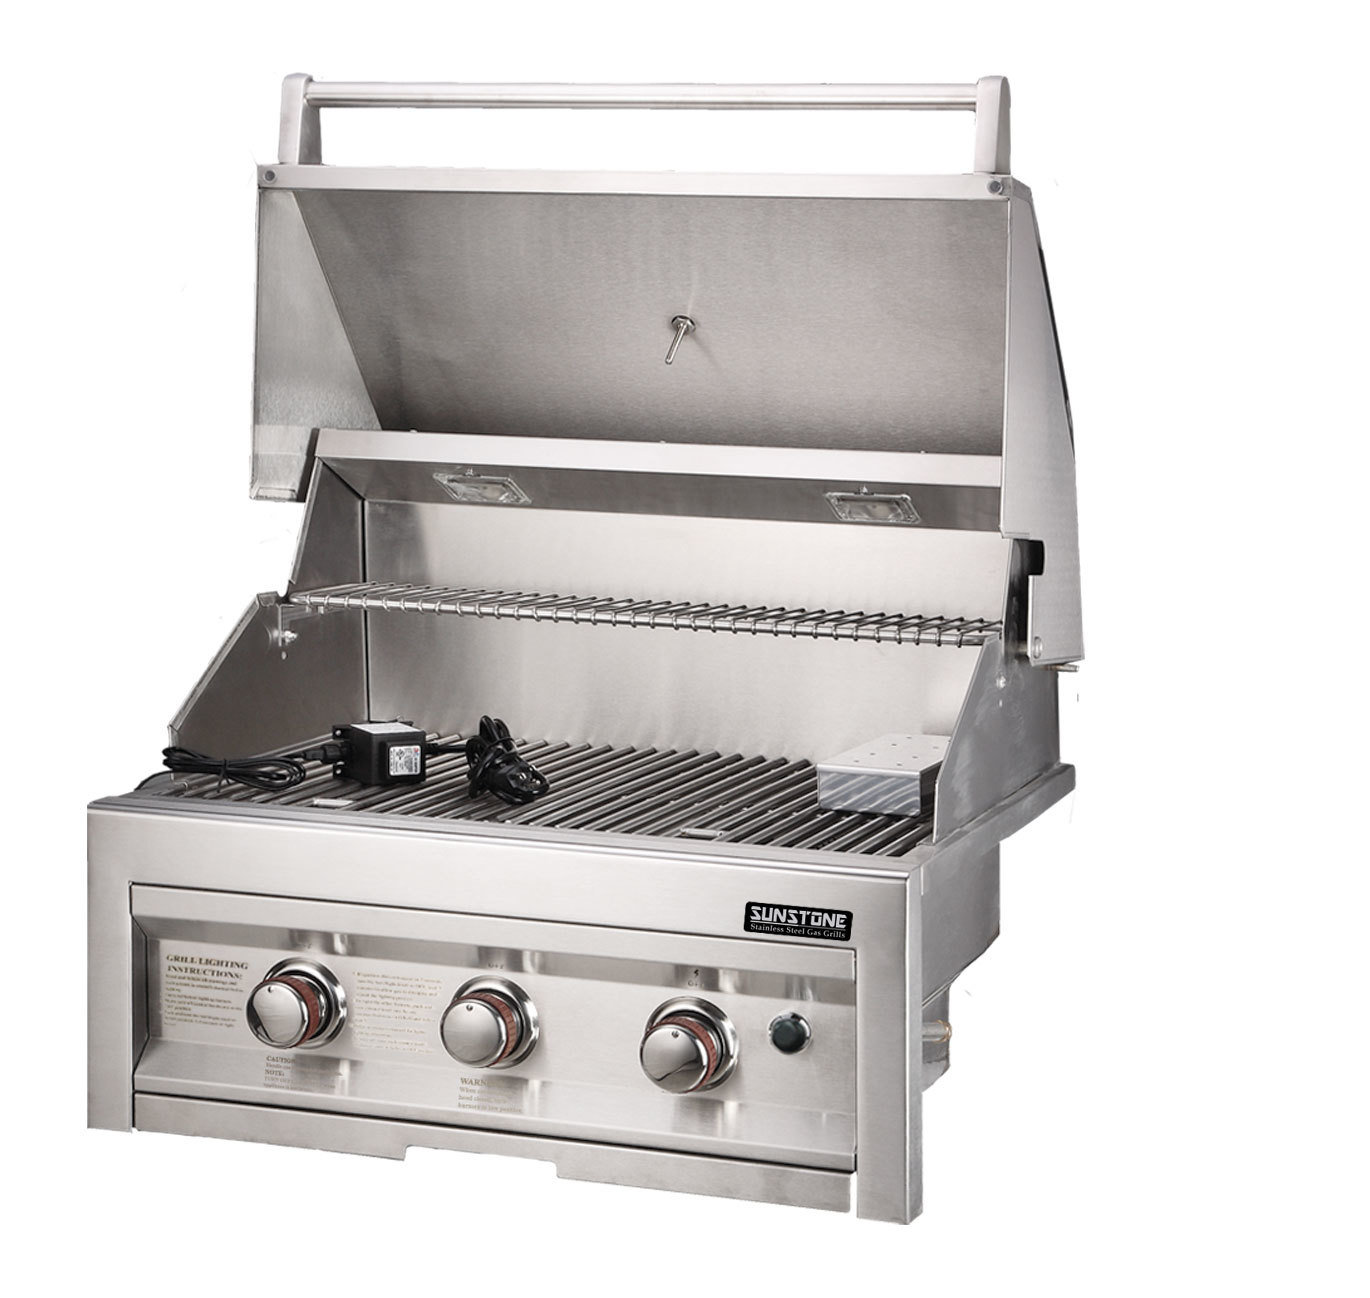 "SUNSTONE 3 Burner Grill 28"" - Item No. SUN3B"